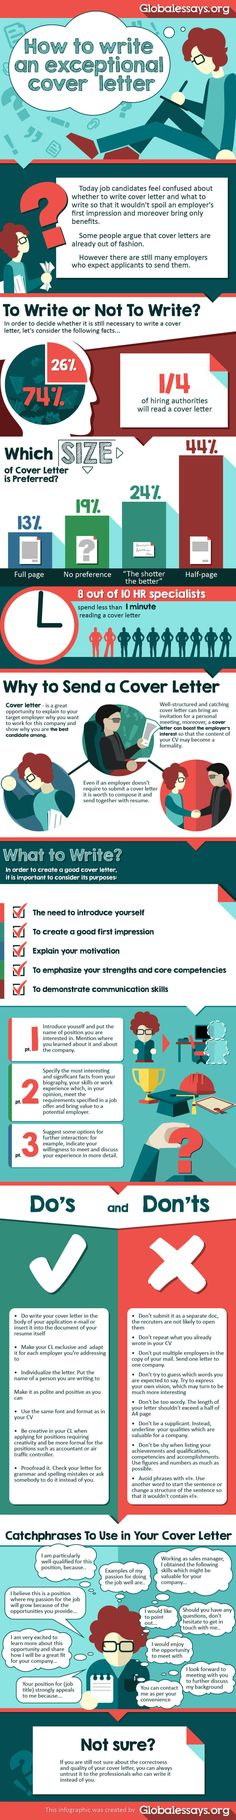 How to Write an Exceptional Cover Letter